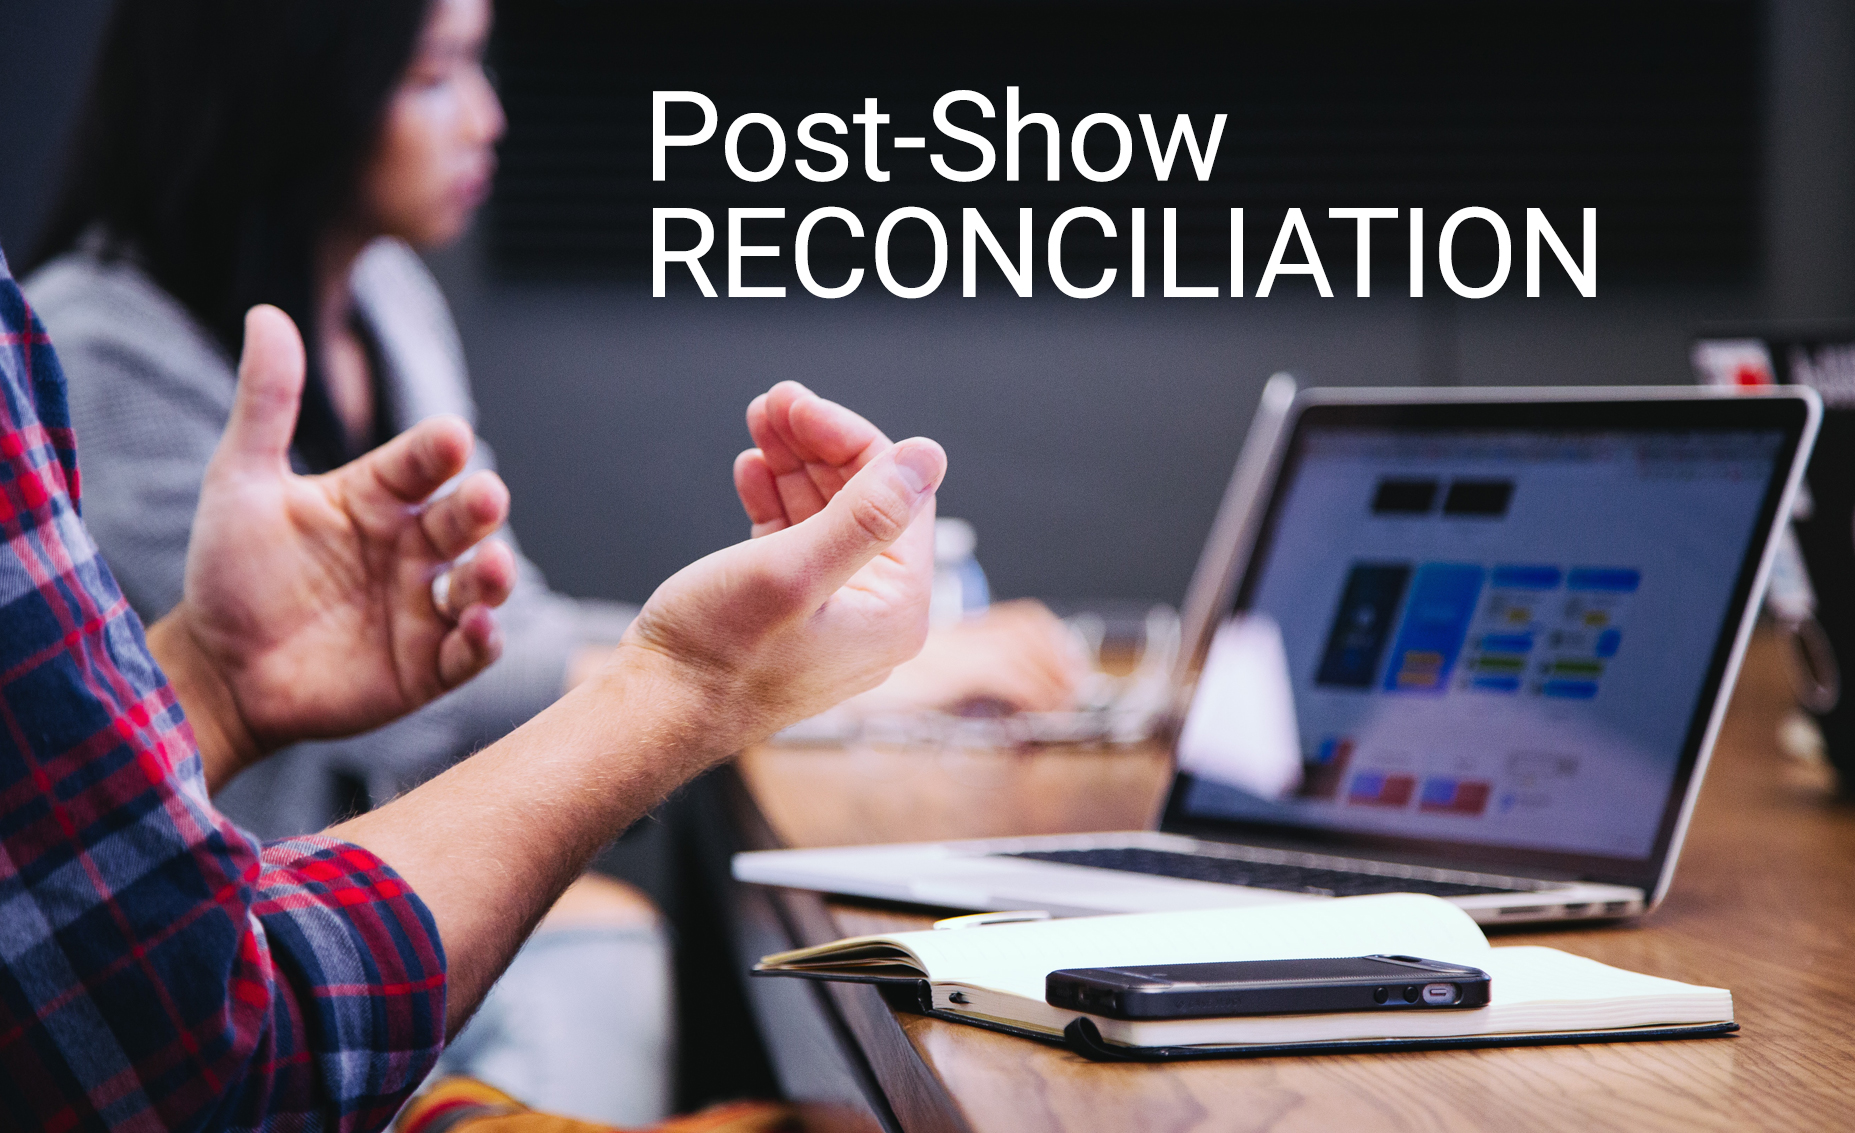 If you're a trade show coordinator or marketer responsible for your company's success at trade shows, then you should be aware of post-show reconciliation. In this article we'll discuss what post-show reconciliation is, how it works, and why companies should use it if given the option.